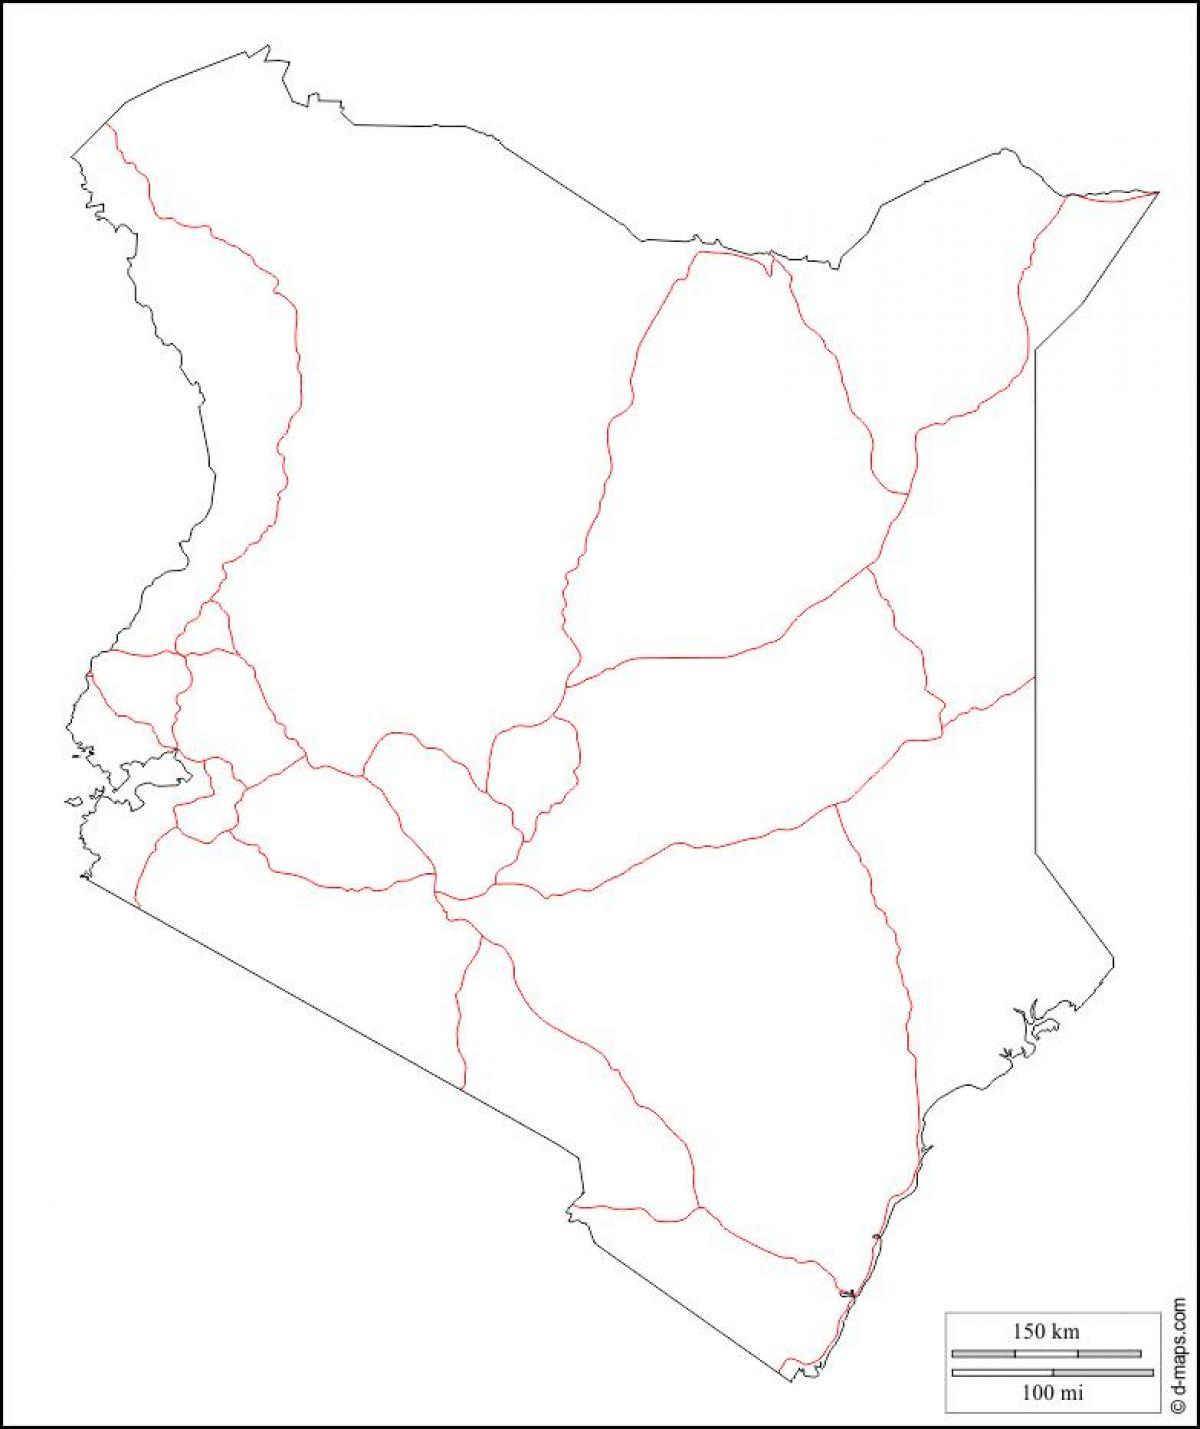 Kenya map outline - Kenya blank map (Eastern Africa - Africa) on blank map of horn of africa, blank map of rodrigues, blank map of latvia, blank map of sao tome and principe, blank map of francophone africa, blank map of us virgin islands, blank map of u.s.a, blank map of commonwealth of independent states, blank map of tortola, blank map of western sahara, blank map of comoros, blank map of palau, blank map of central african republic, blank map of russian federation, blank map of asia region, blank map of st martin, blank map of the czech republic, blank map of kosovo, blank map of gabon, blank map of togo,